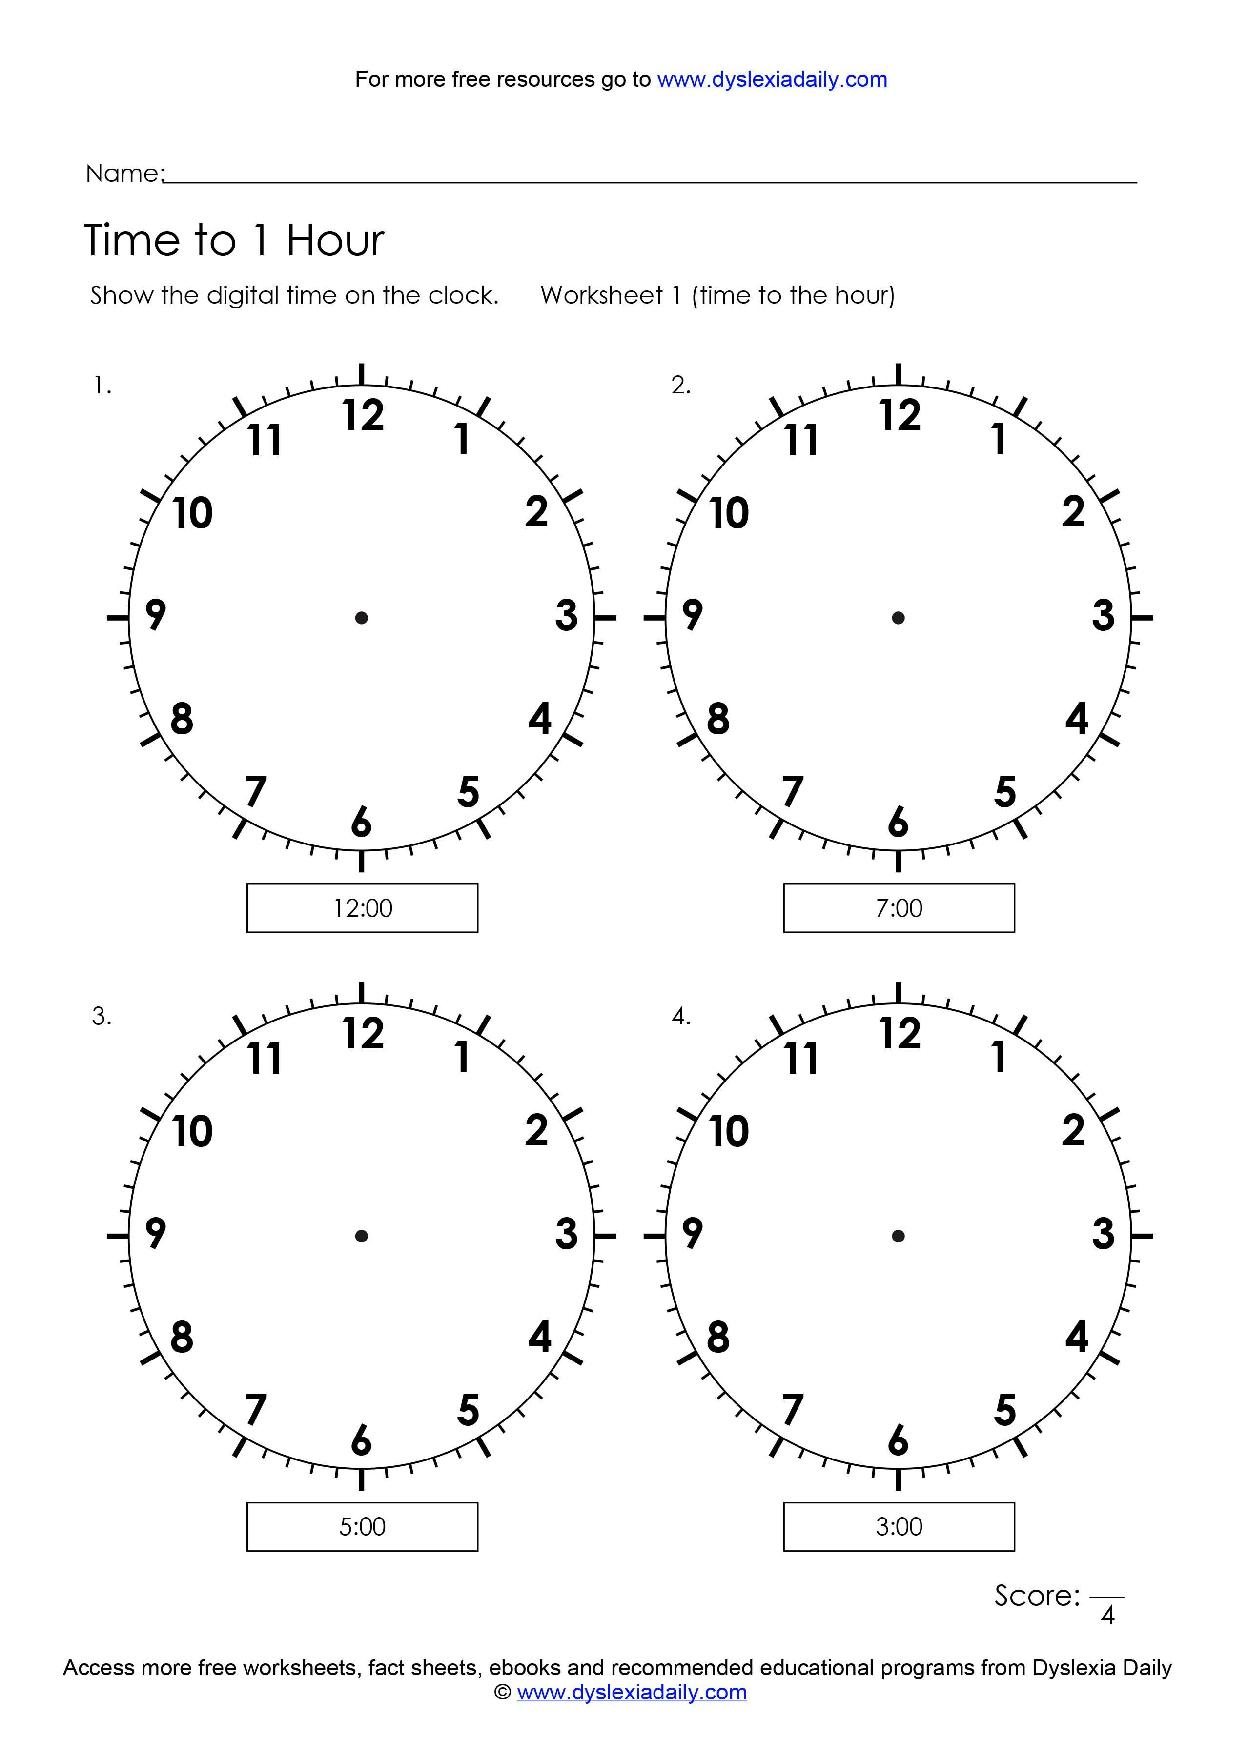 Uncategorized Dyslexia Worksheets free dyslexia math worksheets downloads 1 hour